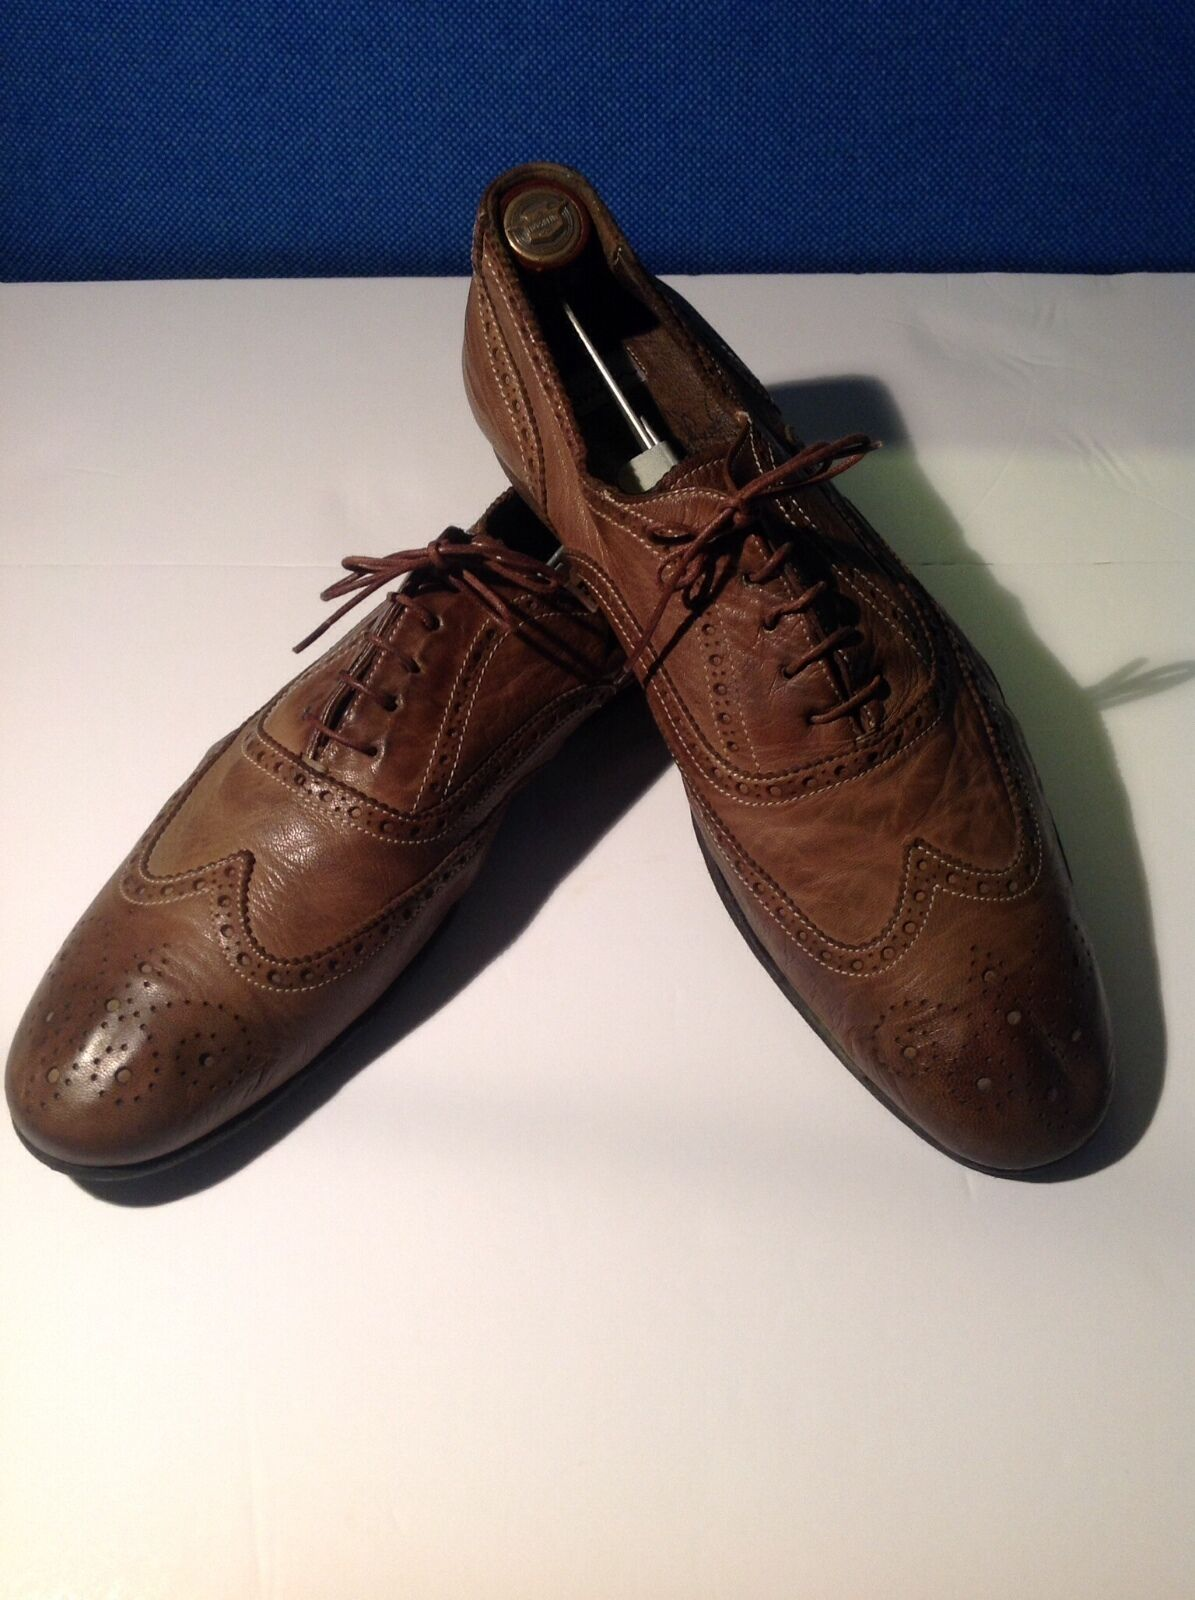 outlet Paul Smith Smith Smith - OLIVE colore SOFT SIDED BROGUES W EXAGGERATED BACK-Dimensione 44 11 EURO  più ordine